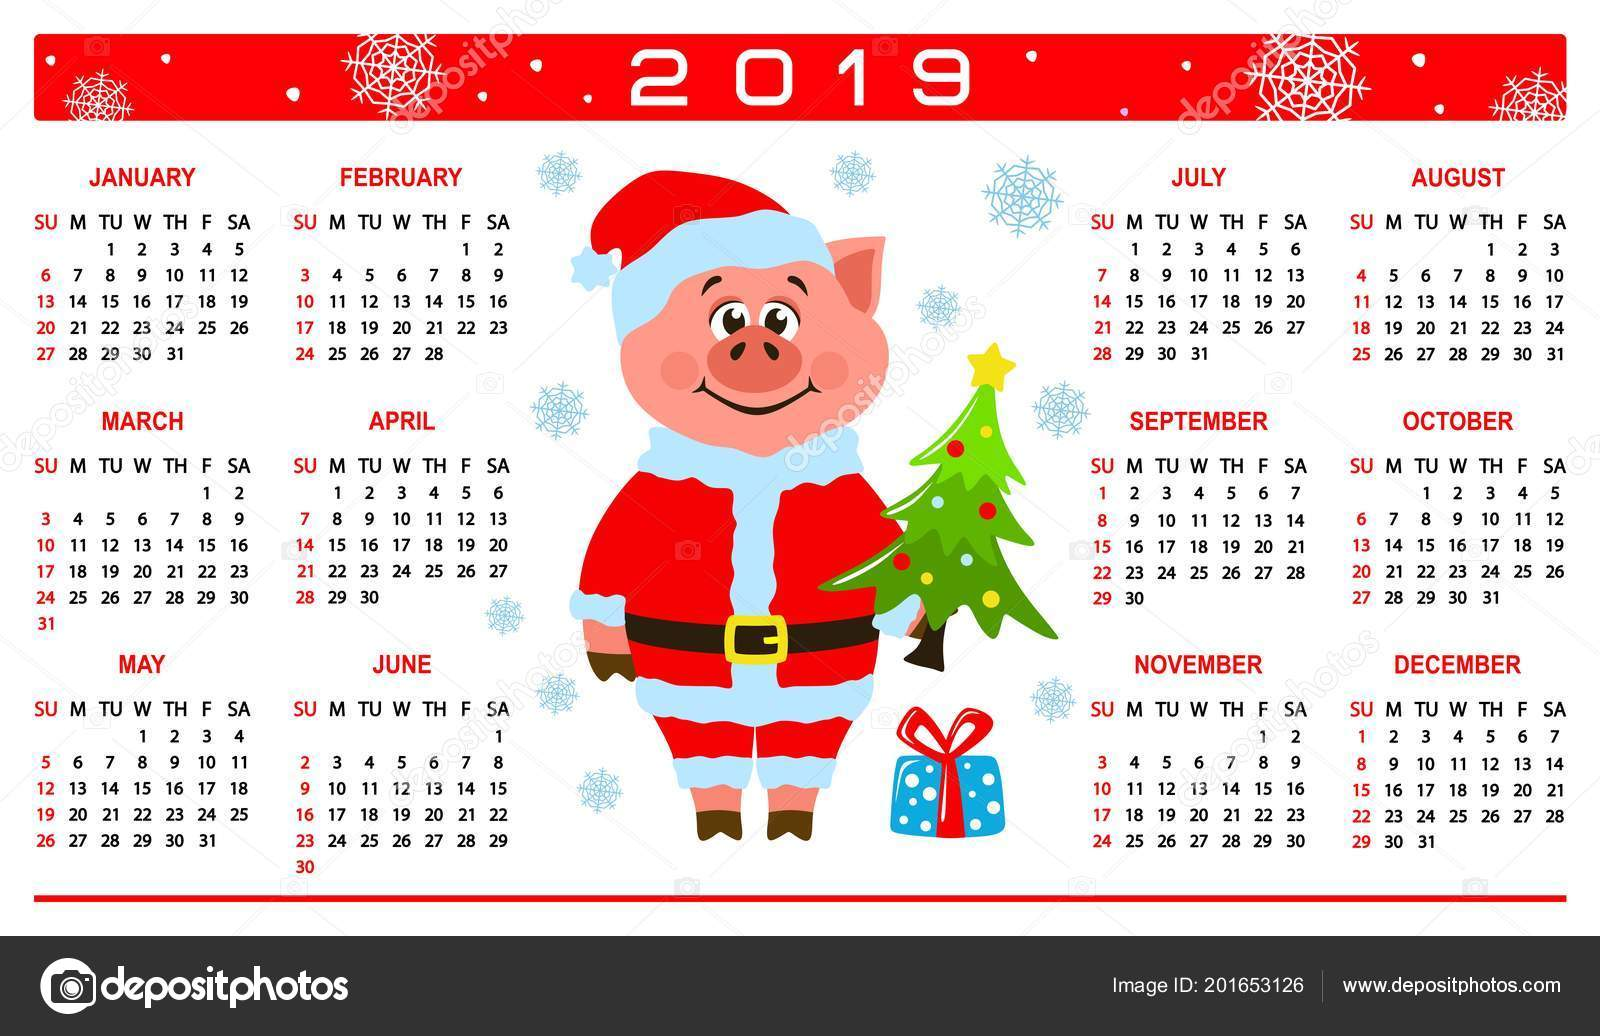 Calendar Christmas 2019 Colorful Calendar 2019 Pig Santa Claus Costume Cartoon Character